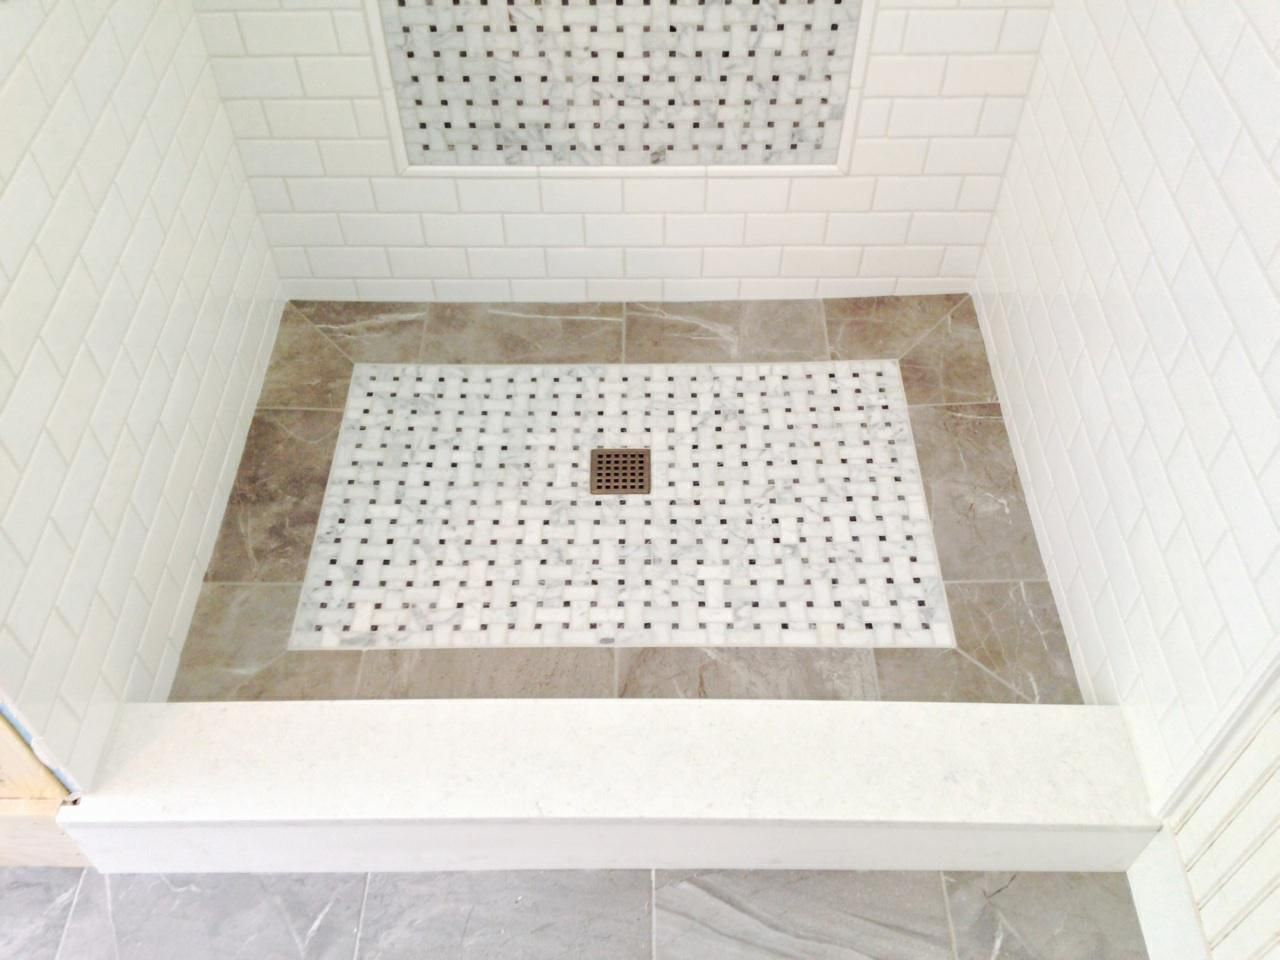 Custom shower floor installed by valley floors basketweave marble custom shower floor installed by valley floors basketweave marble is surrounded by a porcelain tile doublecrazyfo Images